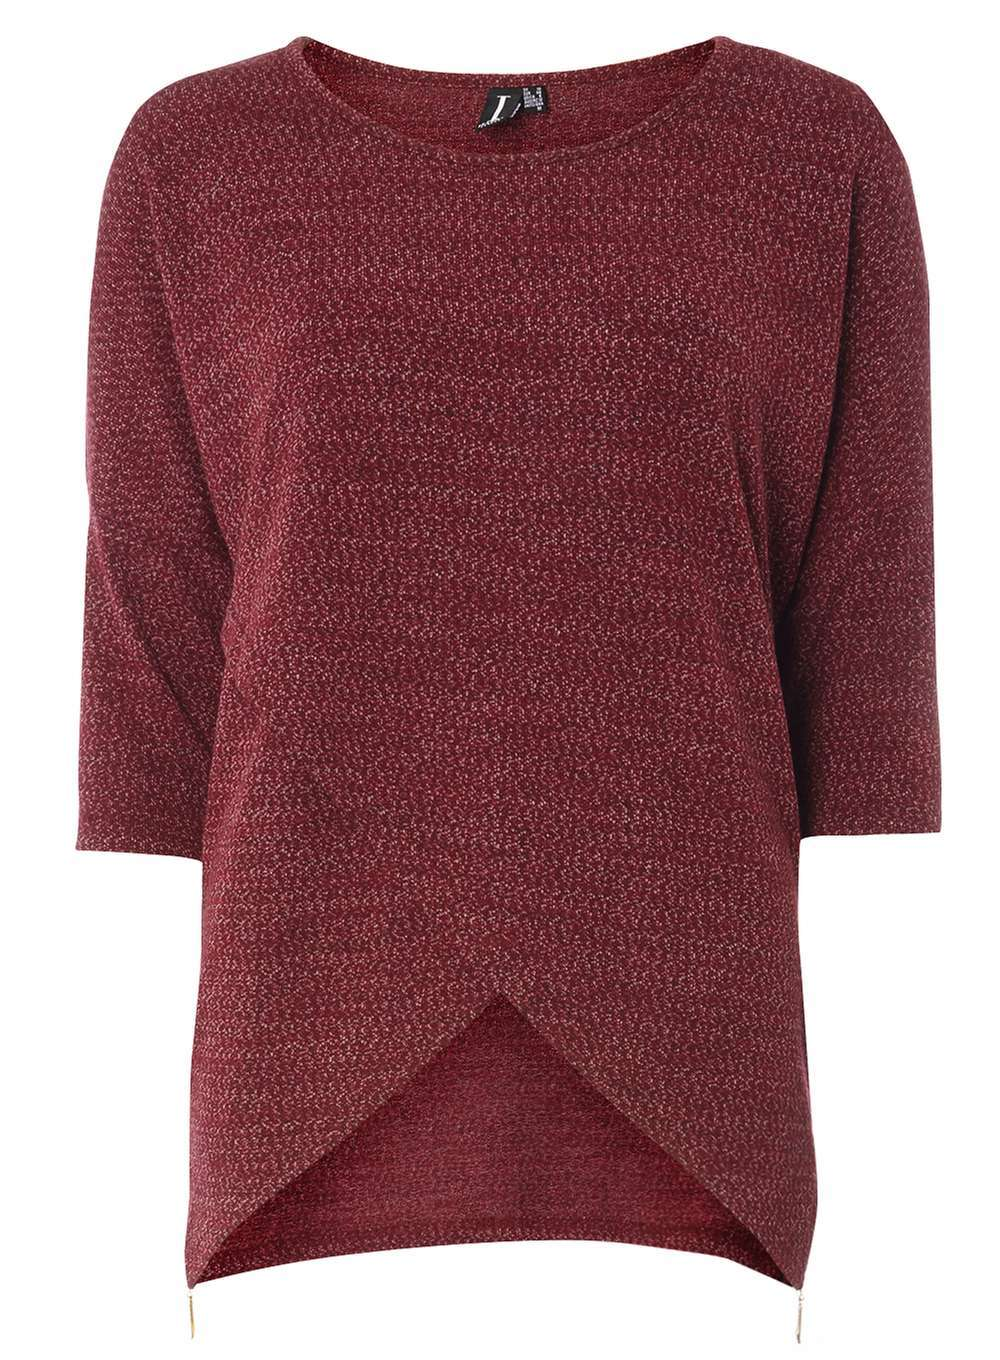 Womens **Izabel London Burgundy Top Red - neckline: round neck; pattern: plain; predominant colour: burgundy; occasions: casual; length: standard; style: top; fit: body skimming; sleeve length: 3/4 length; sleeve style: standard; texture group: knits/crochet; pattern type: fabric; fibres: viscose/rayon - mix; season: a/w 2016; wardrobe: highlight